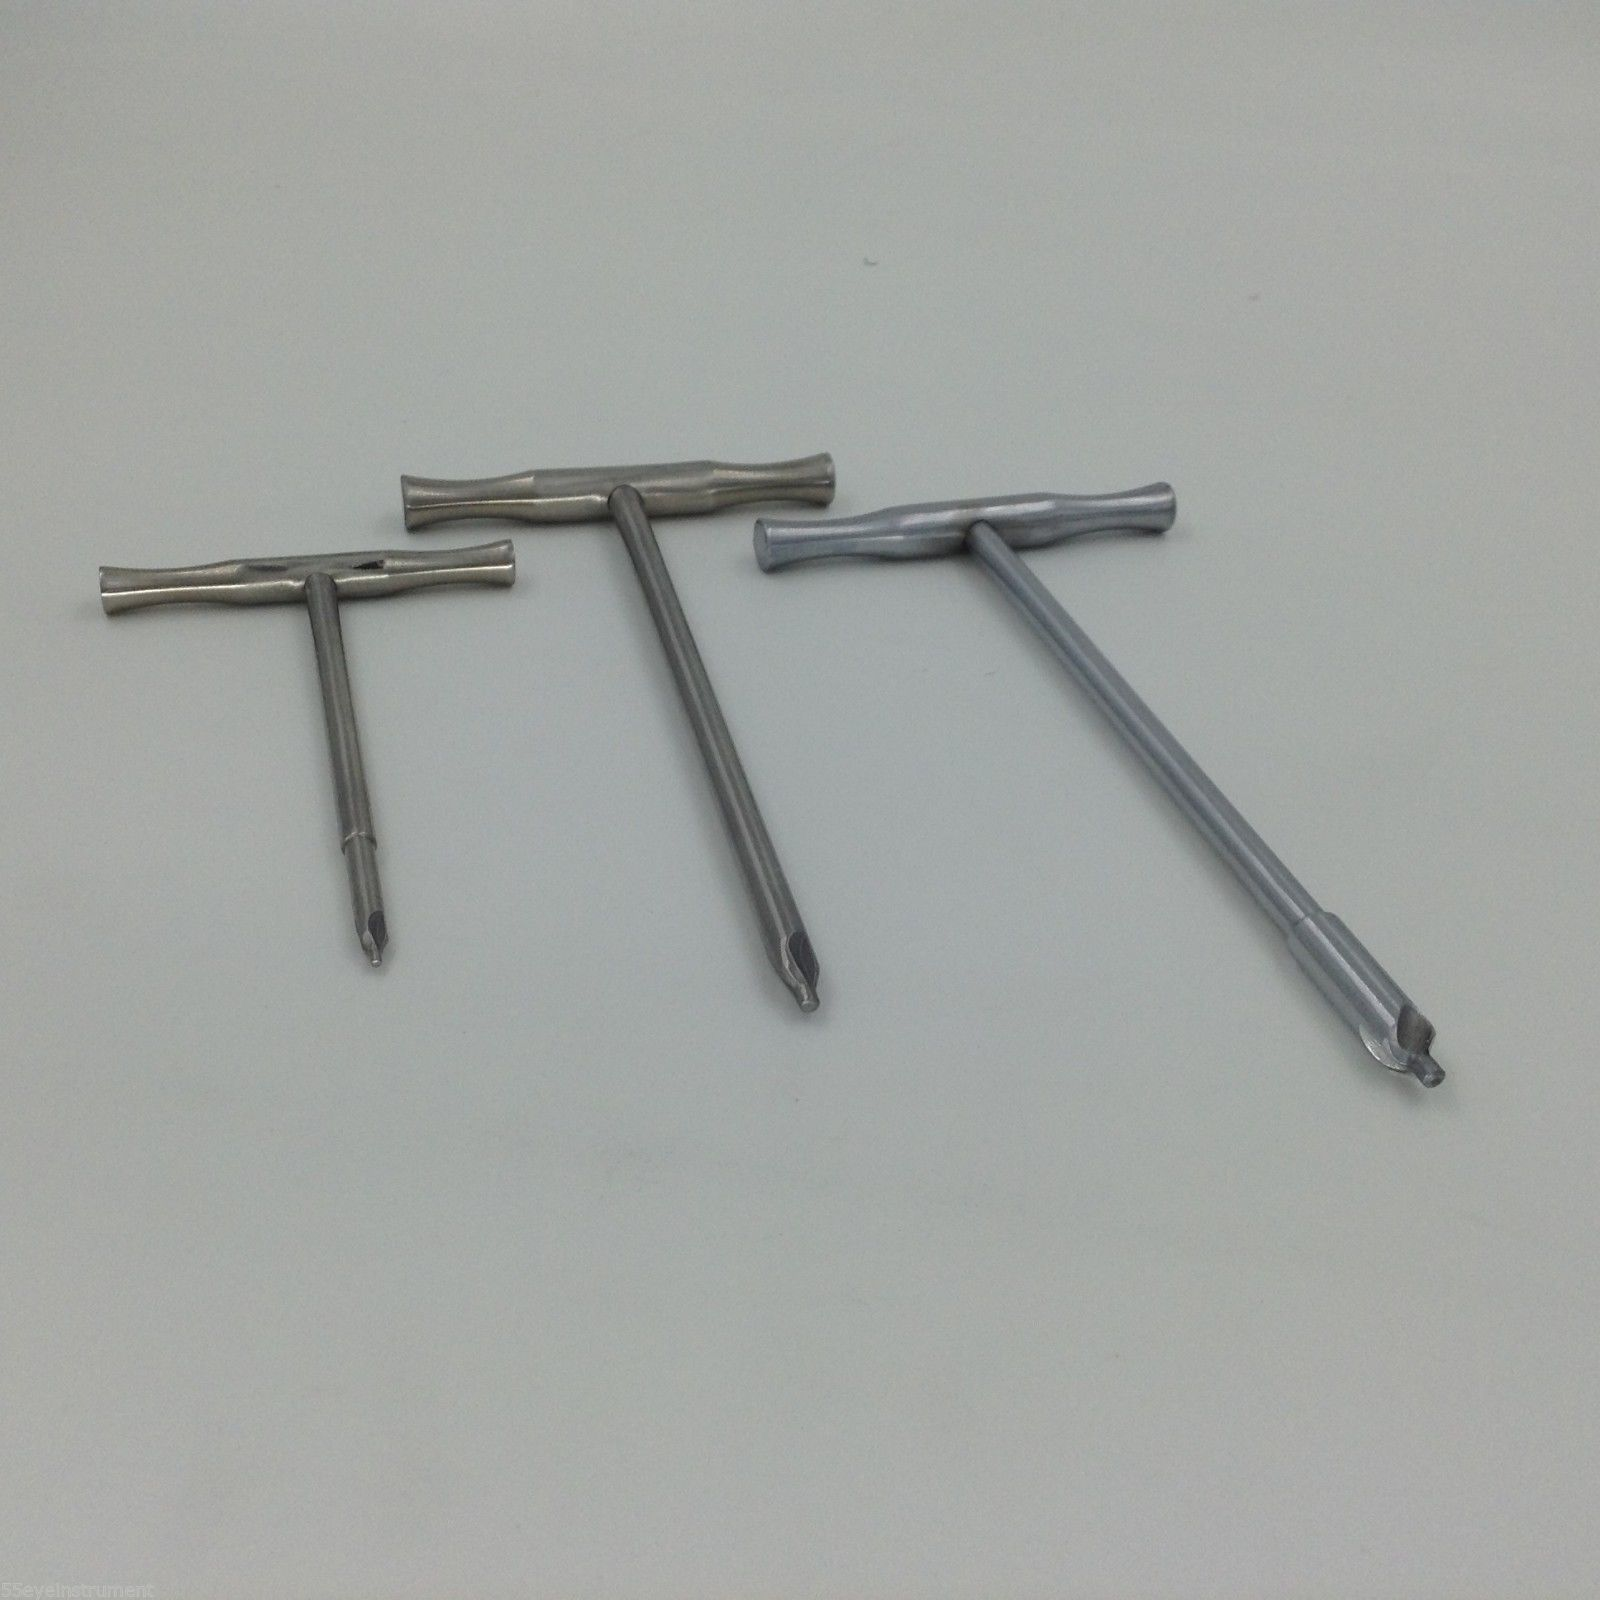 3pcs/set Reamer With T-handle 4mm 6mm 8mm Tip Orthopedics Veterinary Instrument